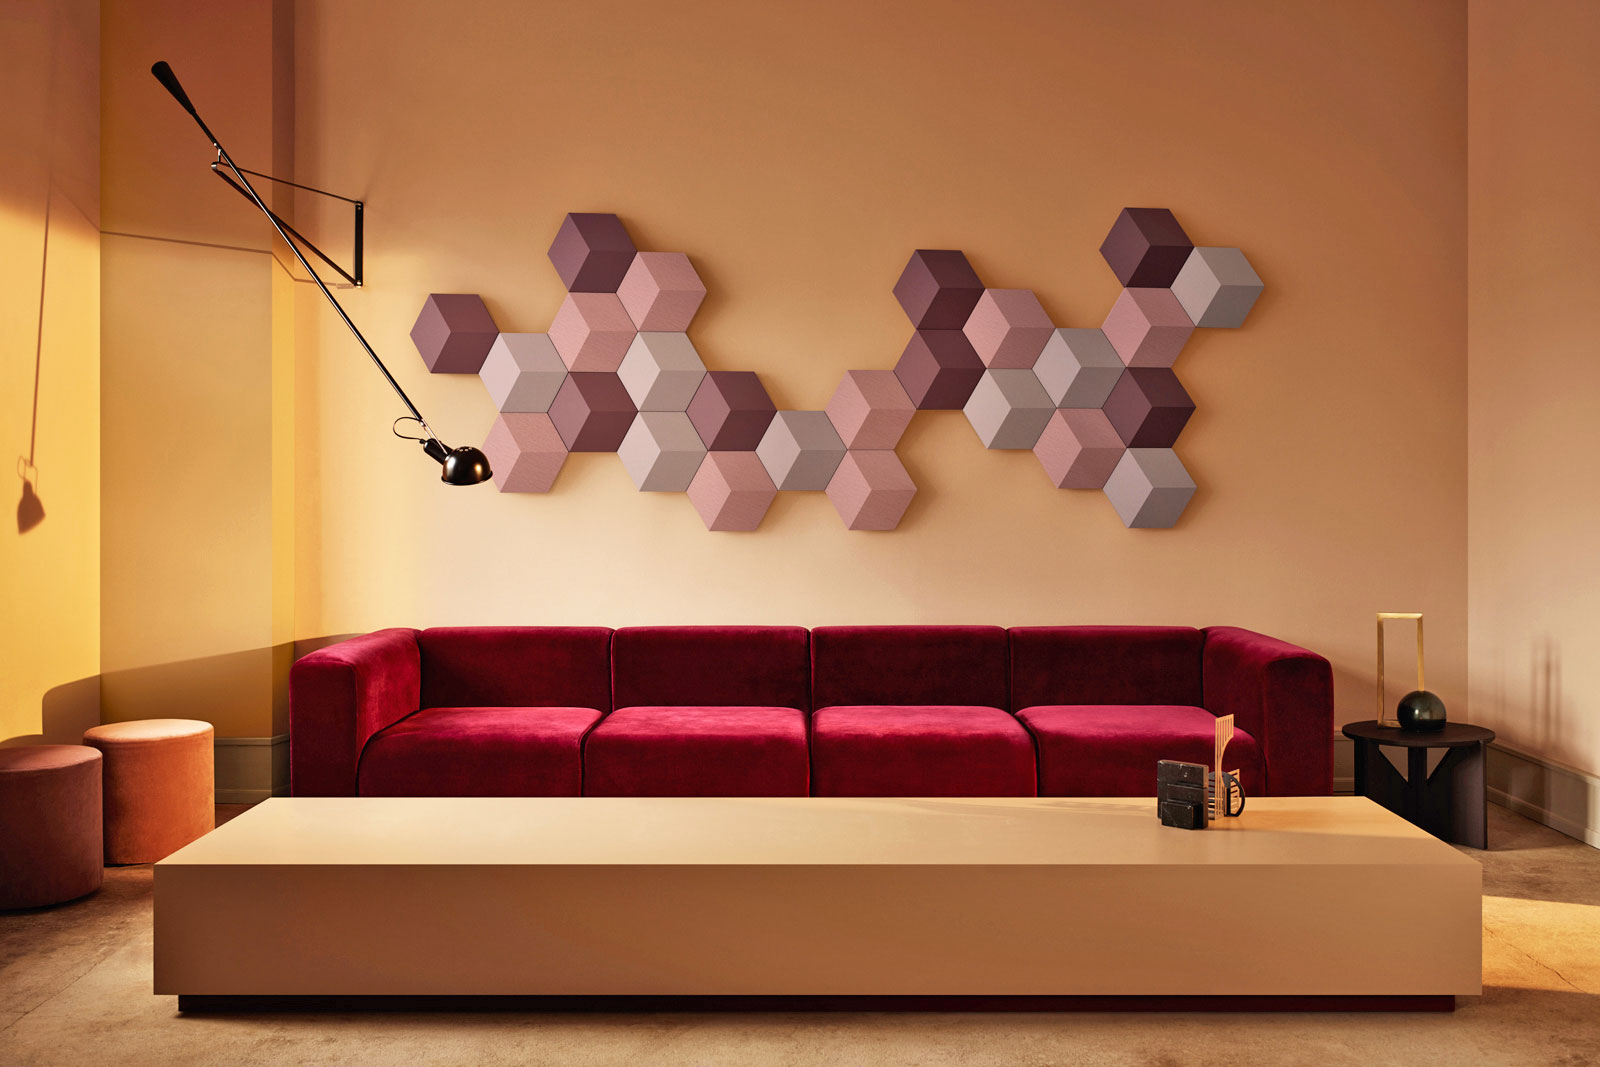 bang olufsen 39 s modular speakers double as wall art. Black Bedroom Furniture Sets. Home Design Ideas